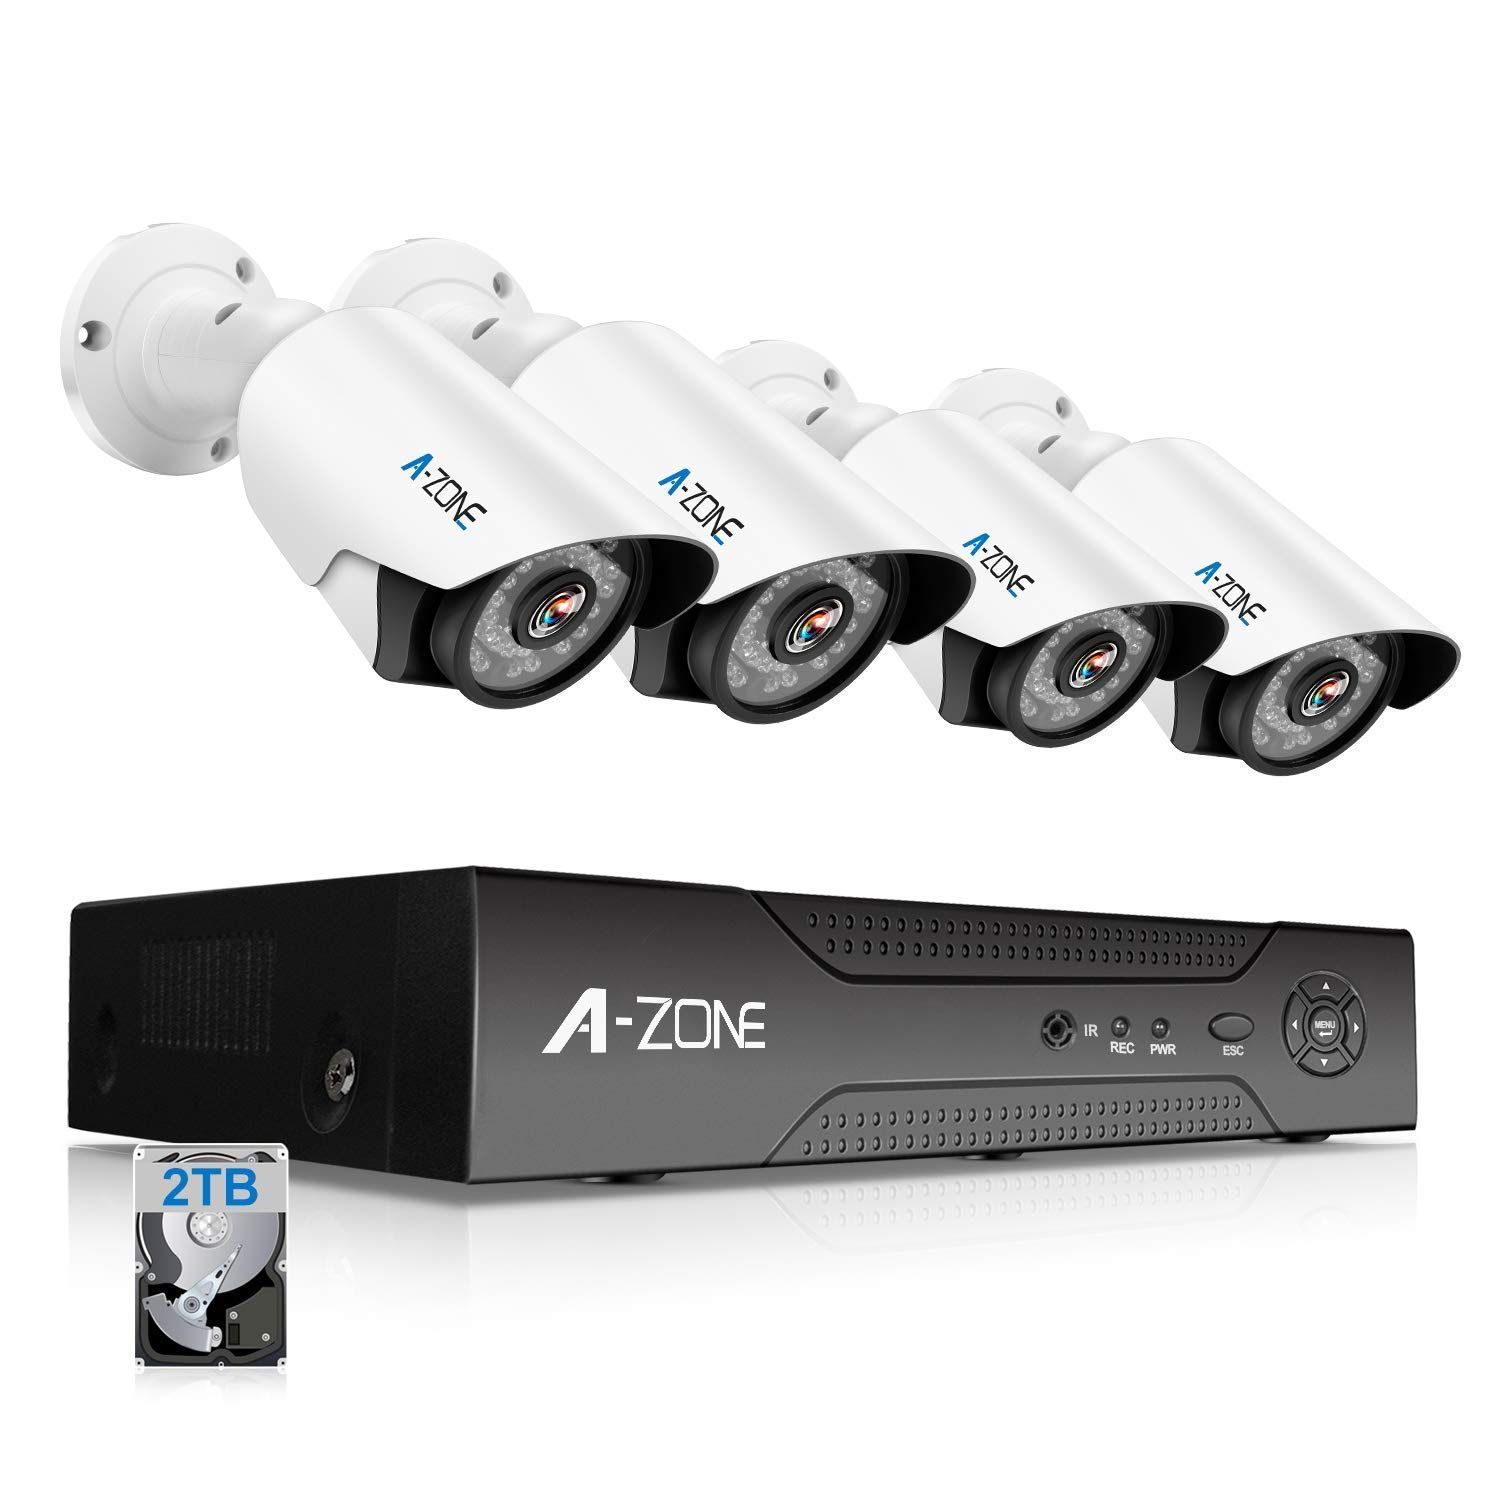 A-ZONE Security Camera System 4 Channel 1080P DVR 4 x 960P HD Waterproof Night Vision Indoor/Outdoor Home CCTV Video Wired Surveillance Kits, ...